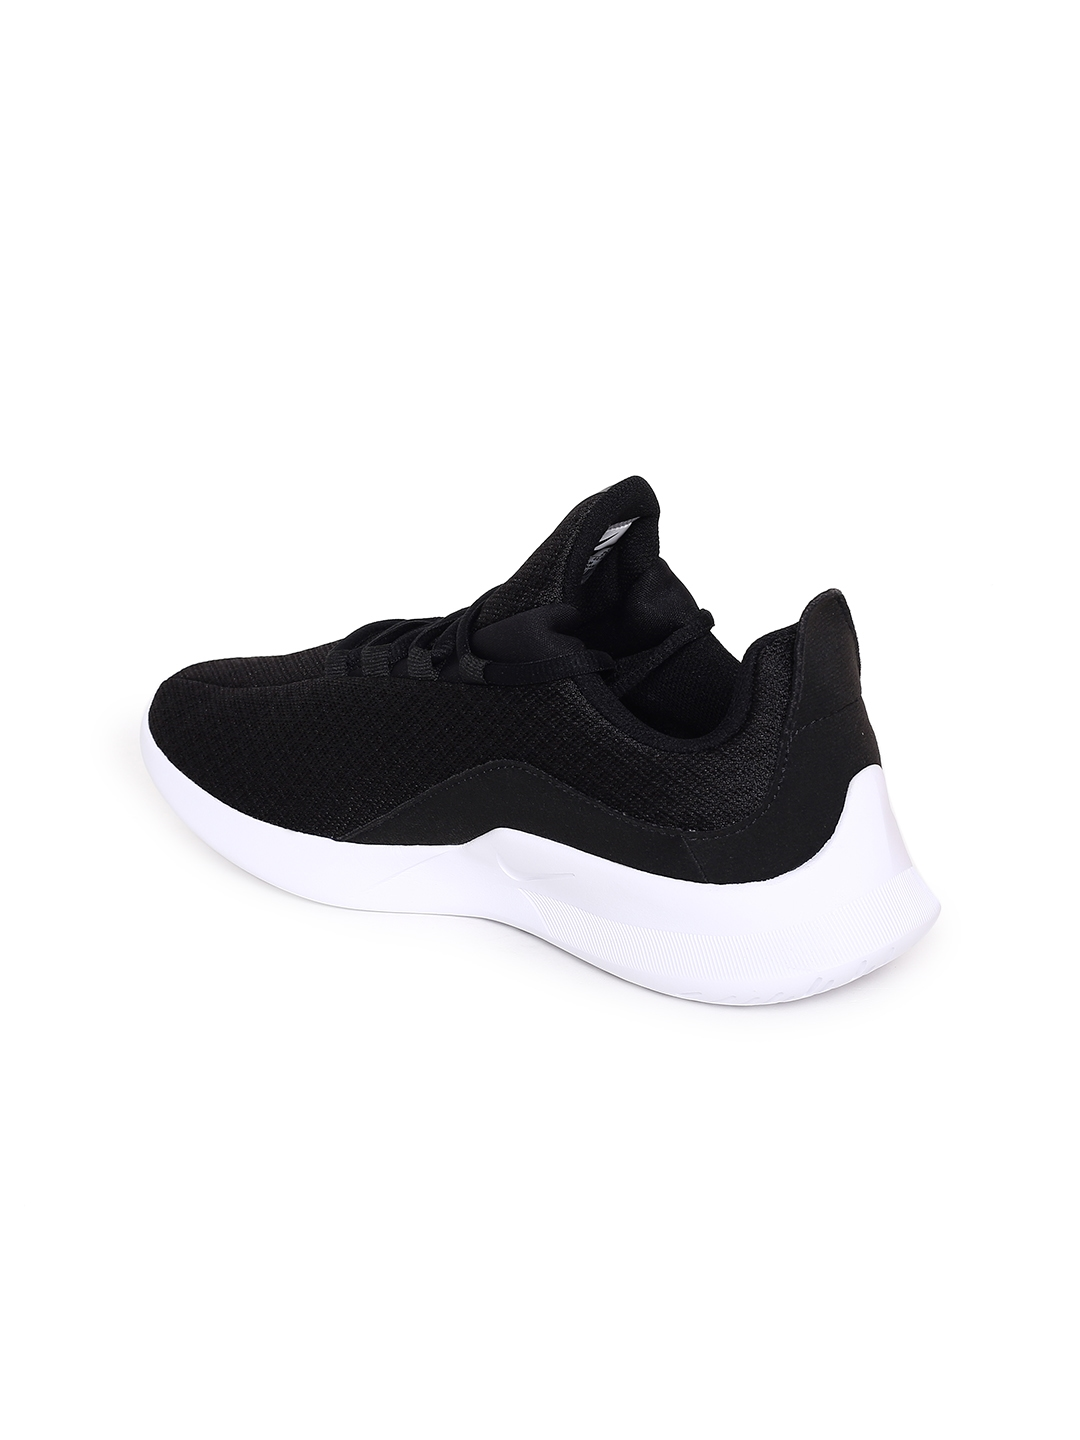 4d2cc15c00 Buy Nike Women Black Viale Sneakers - Casual Shoes for Women 6676937 ...